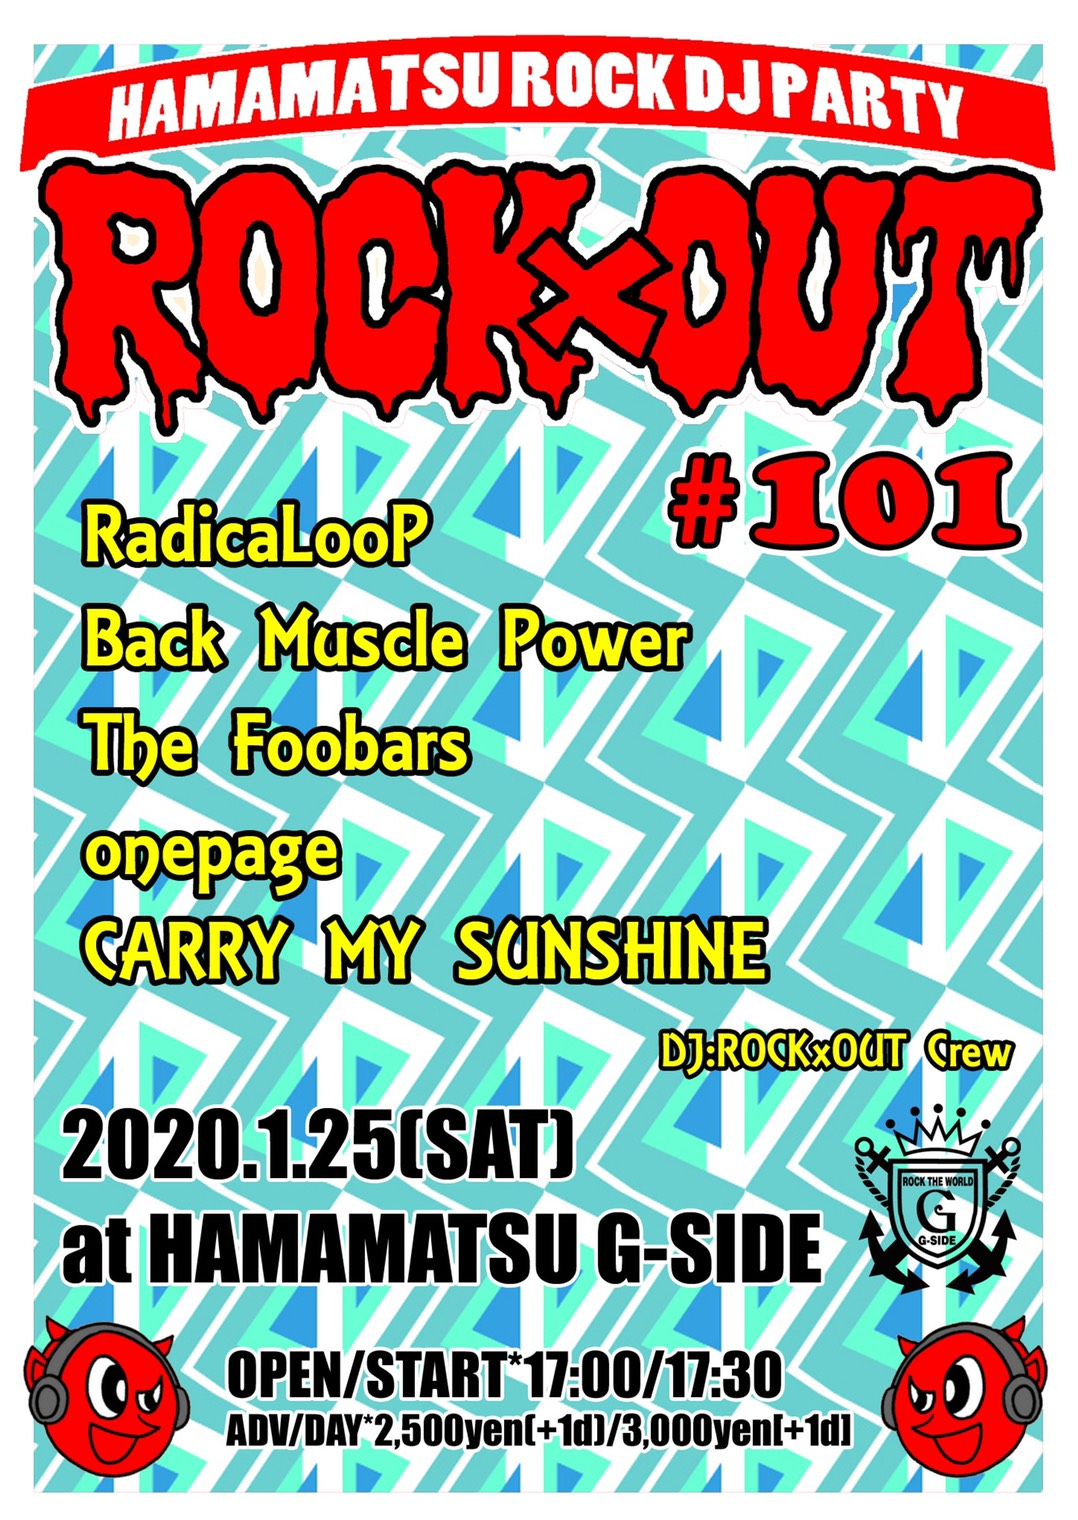 Feel Hamamatsu Sound Vol.02